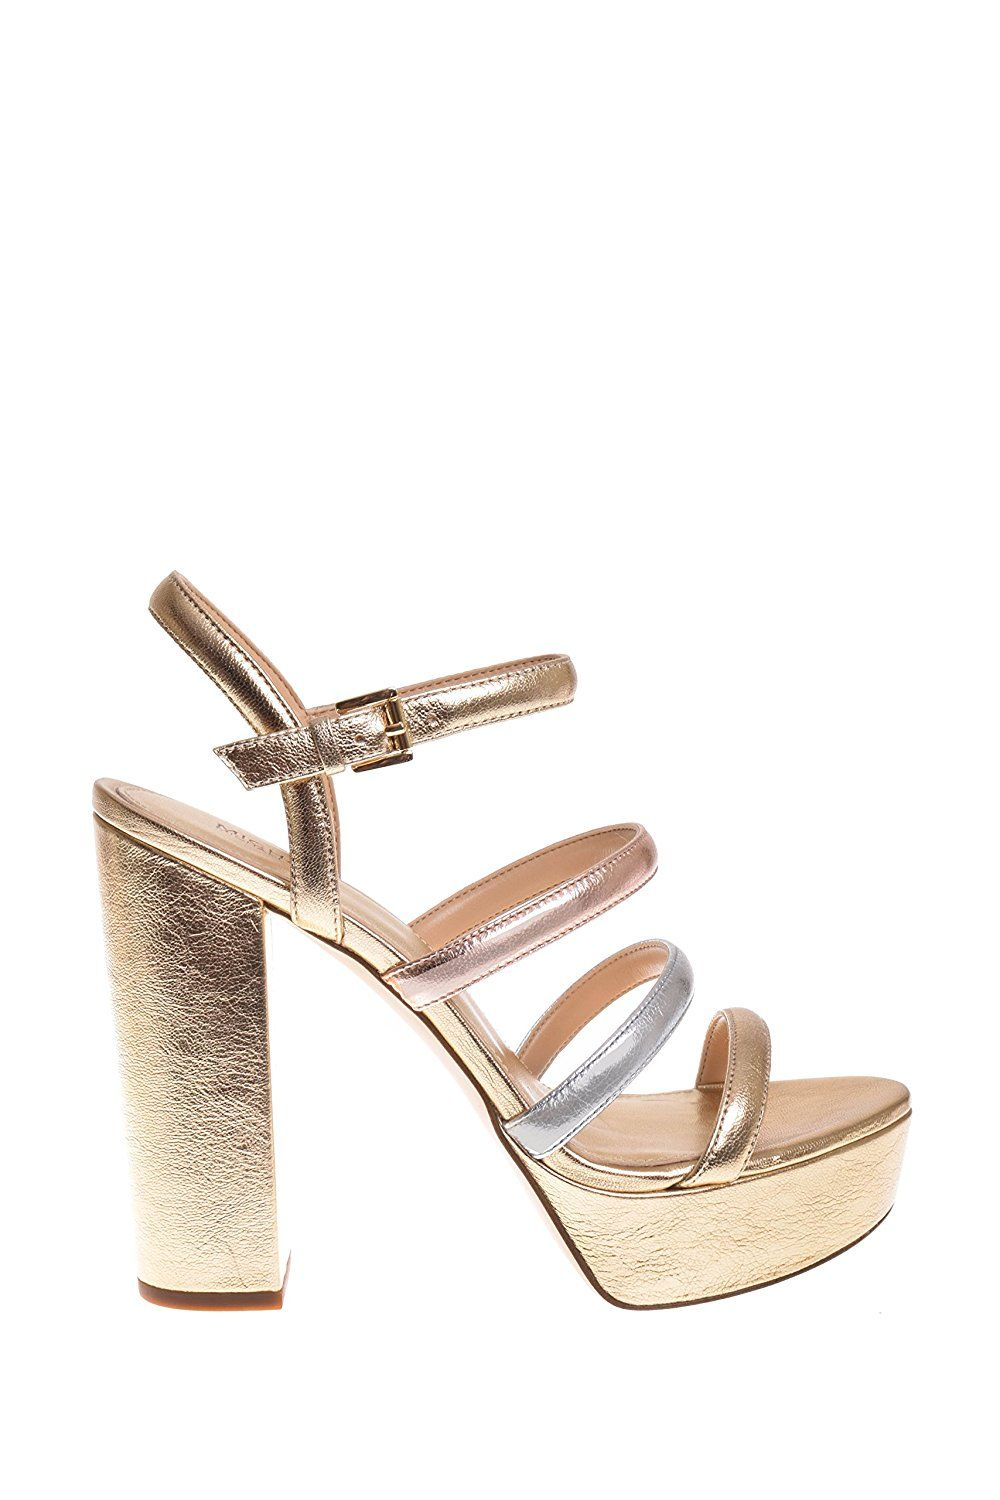 5c9e3f3ef37 Michael Kors Nantucket Leather Platform Sandal In Pale Gold Silver     Want  additional info